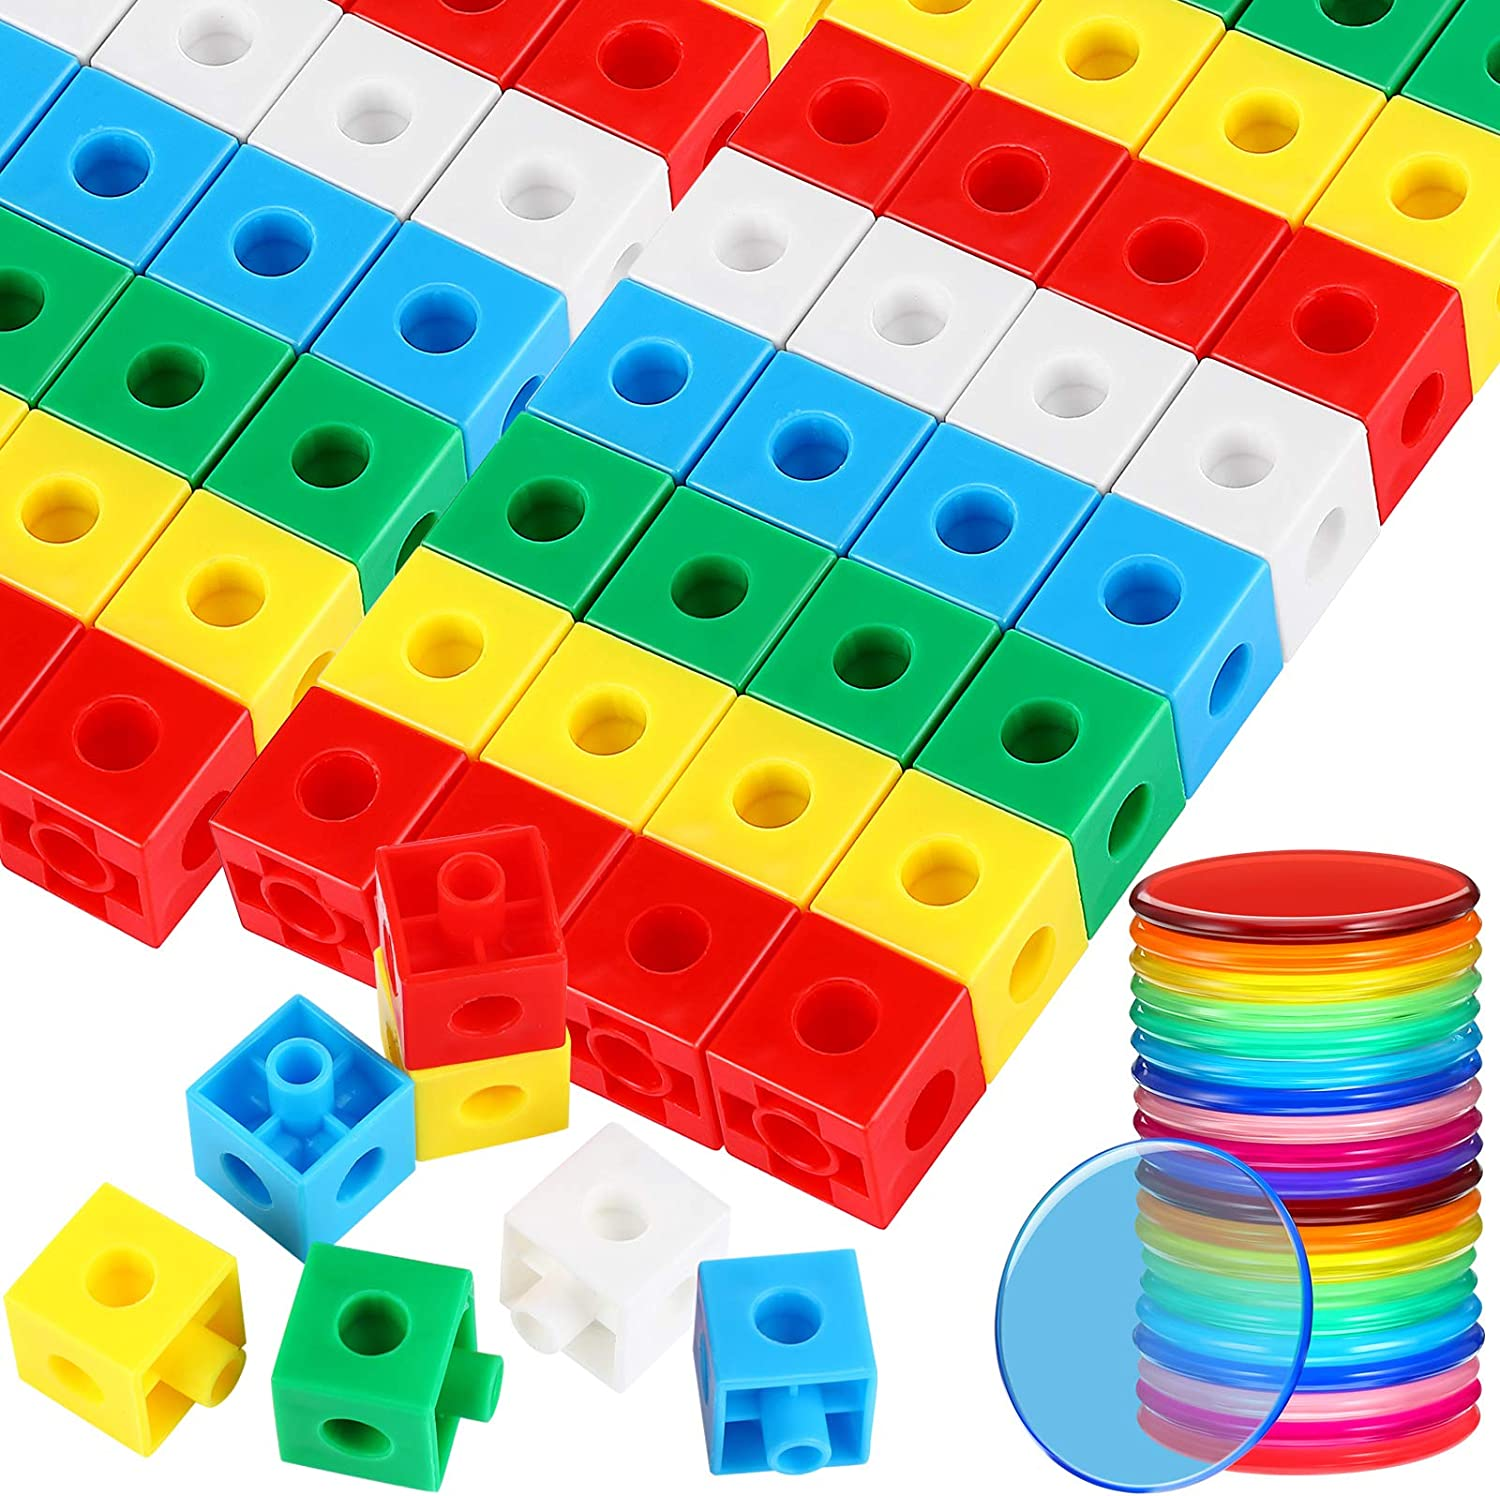 150 Pieces Counting Chips Plastic Learning Chips Big Size Square Centimeter Cubes Solid Colorful Educational Counting Toys Math Teach Accessories for Boys, Girls, Students and Teachers